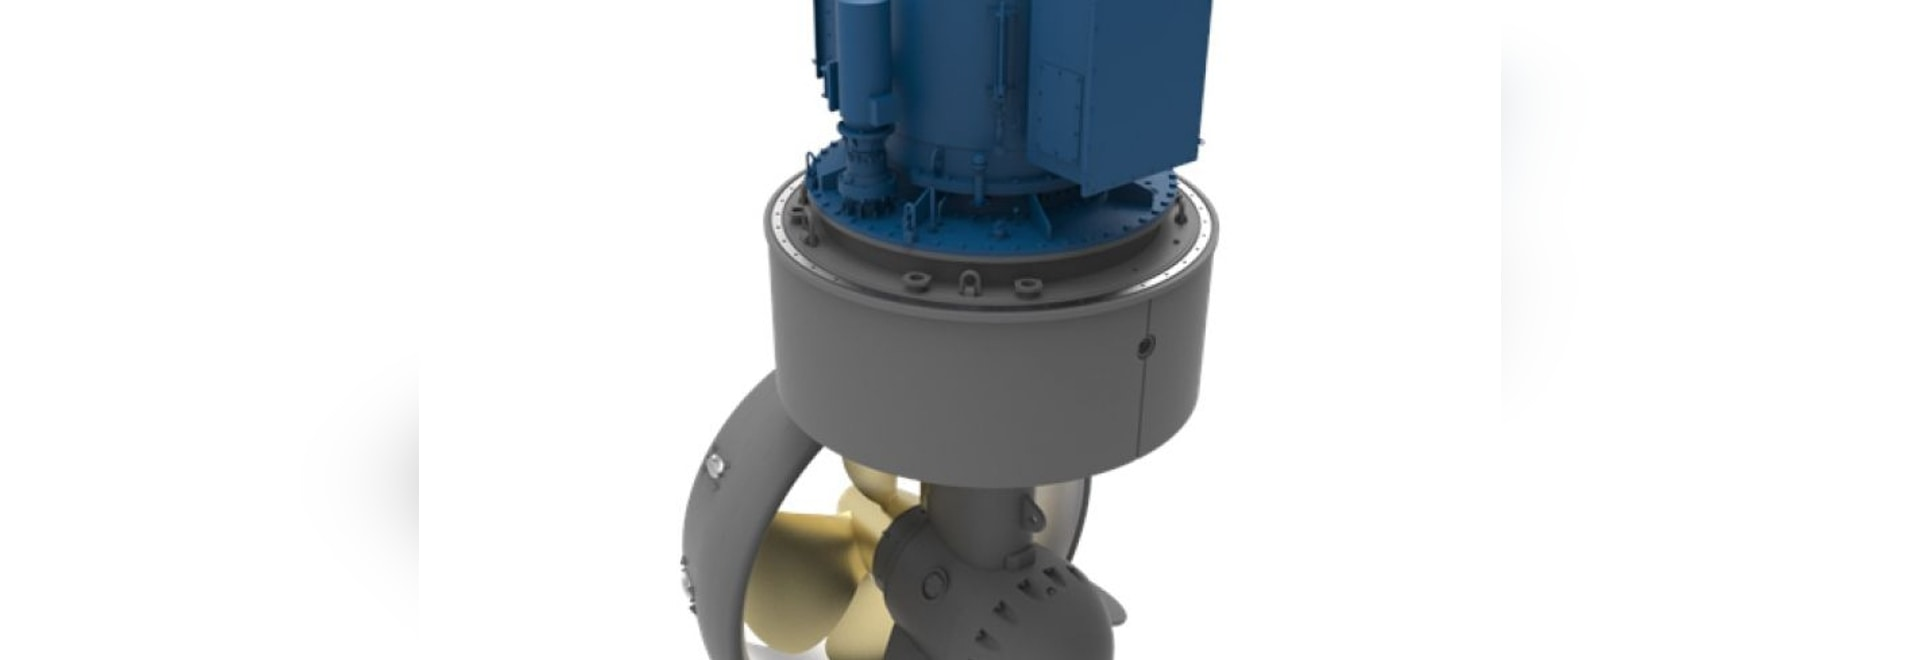 Kongsberg's US255 thrusters will power the world's first fully electric shiphandling tug